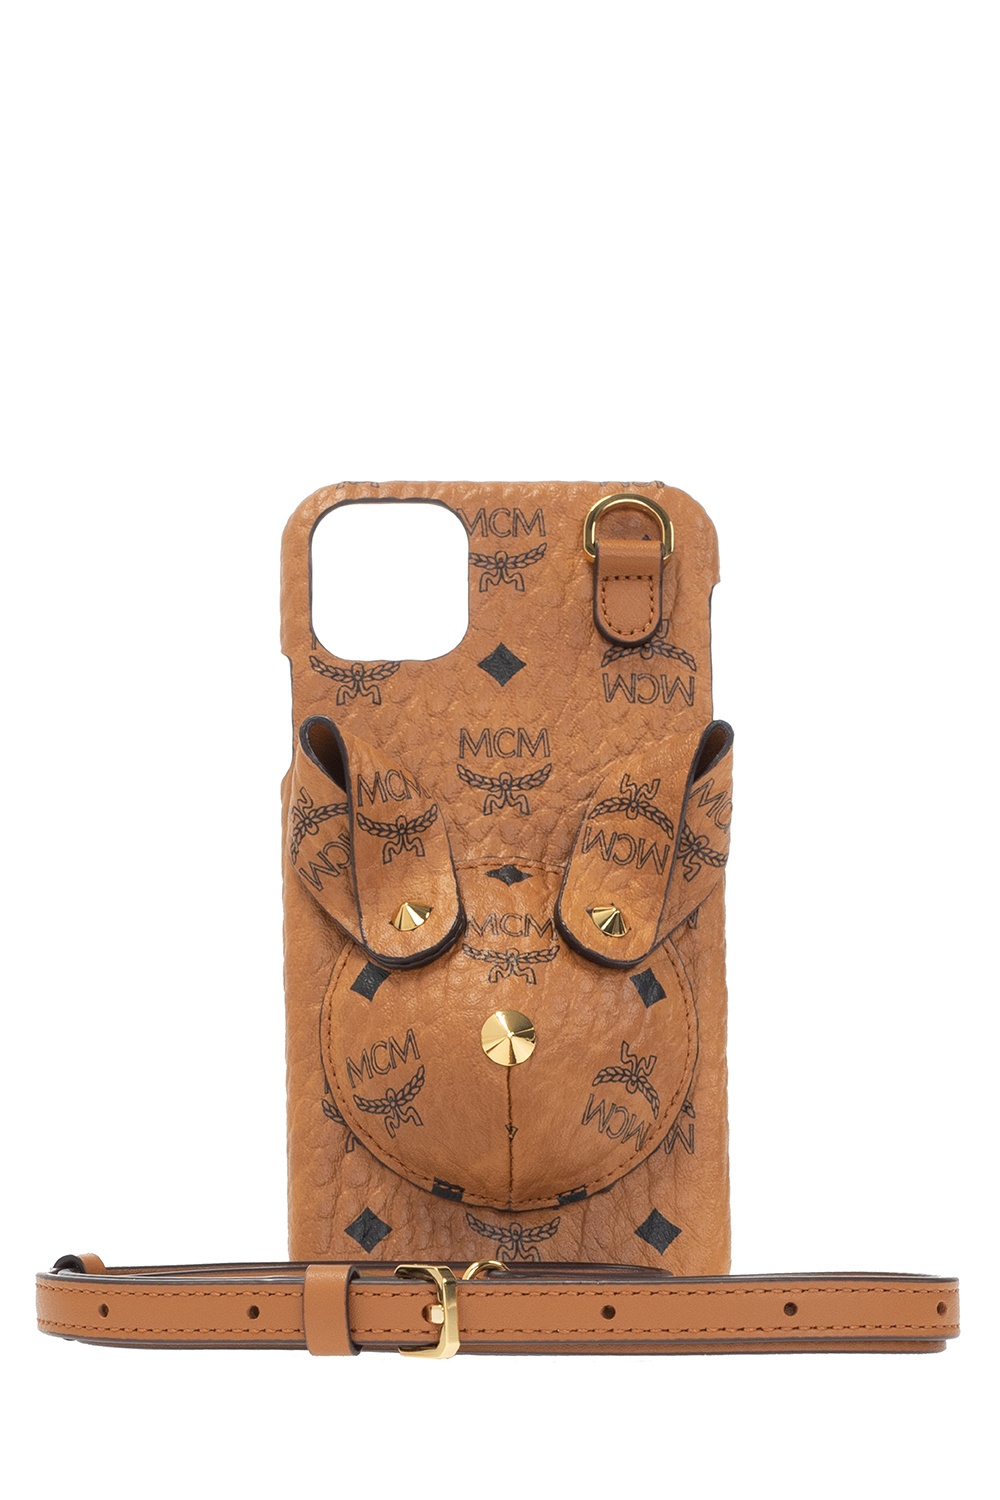 MCM Strapped iPhone 11 Pro Max case